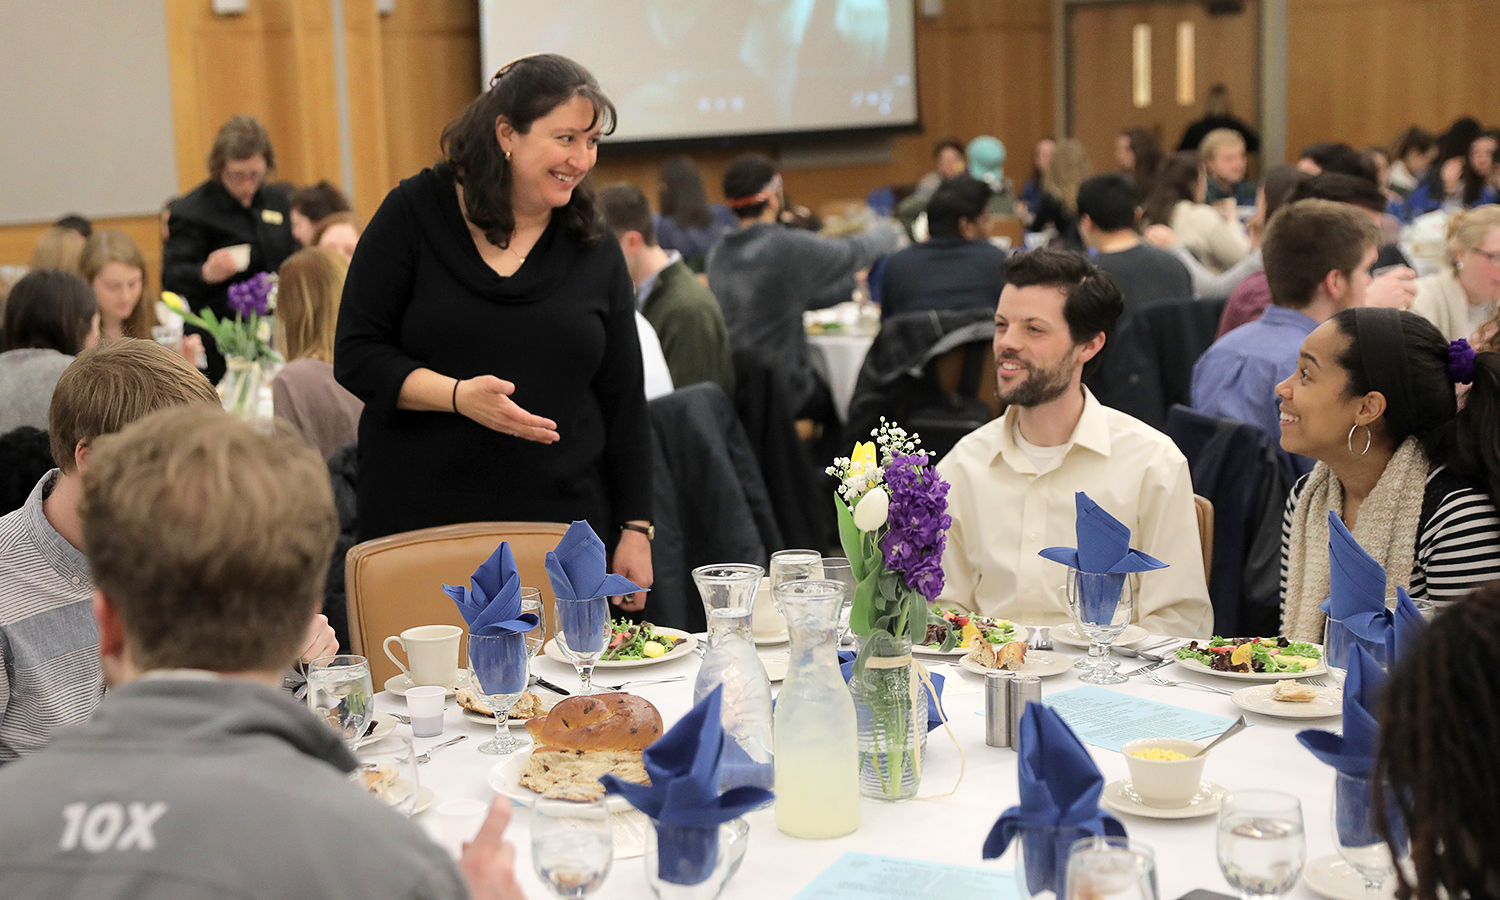 Director of the Abbe Center for Jewish Life and HWS Hillel Advisor Julianne Miller chats with Associate Director of the Center for Community Engagement and Service Learning Jeremy Wattles and Assistant Director of the Office of Intercultural Affairs Darline Polanco Wattles '09 during HWS Shabbat dinner.